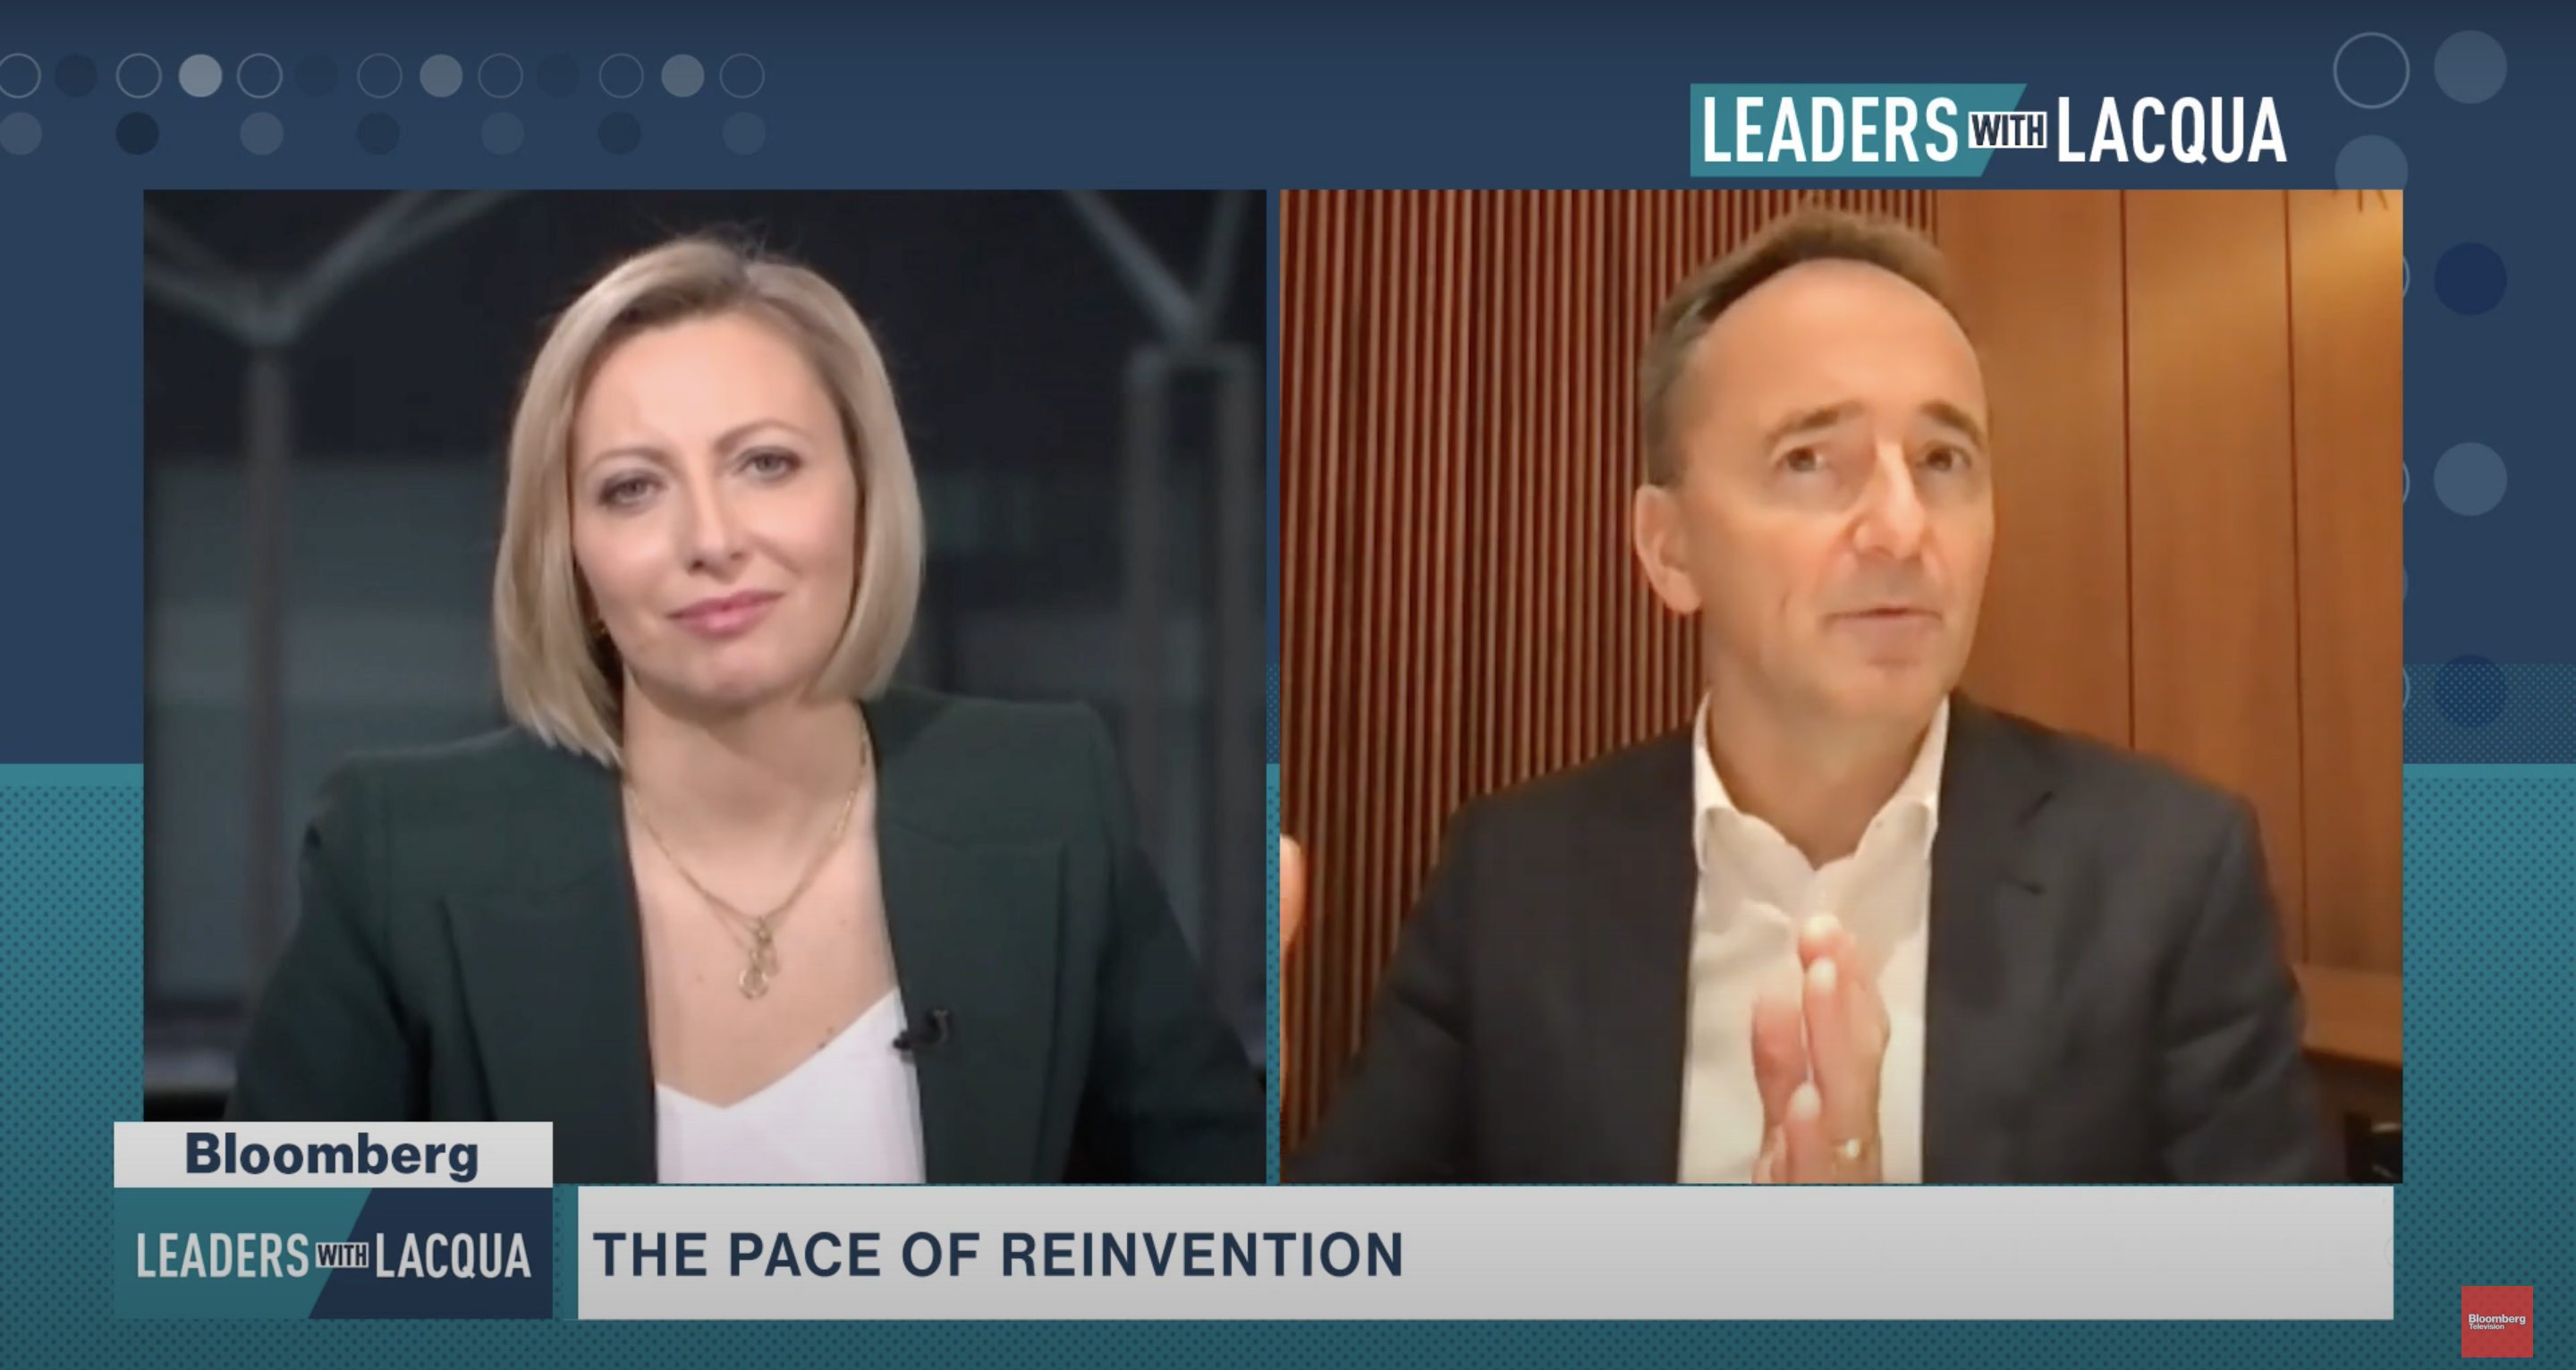 """Dreams and Details Explored on Bloomberg: Jim Hagemann Snabe at """"Leaders with Lacqua"""" (Video)"""